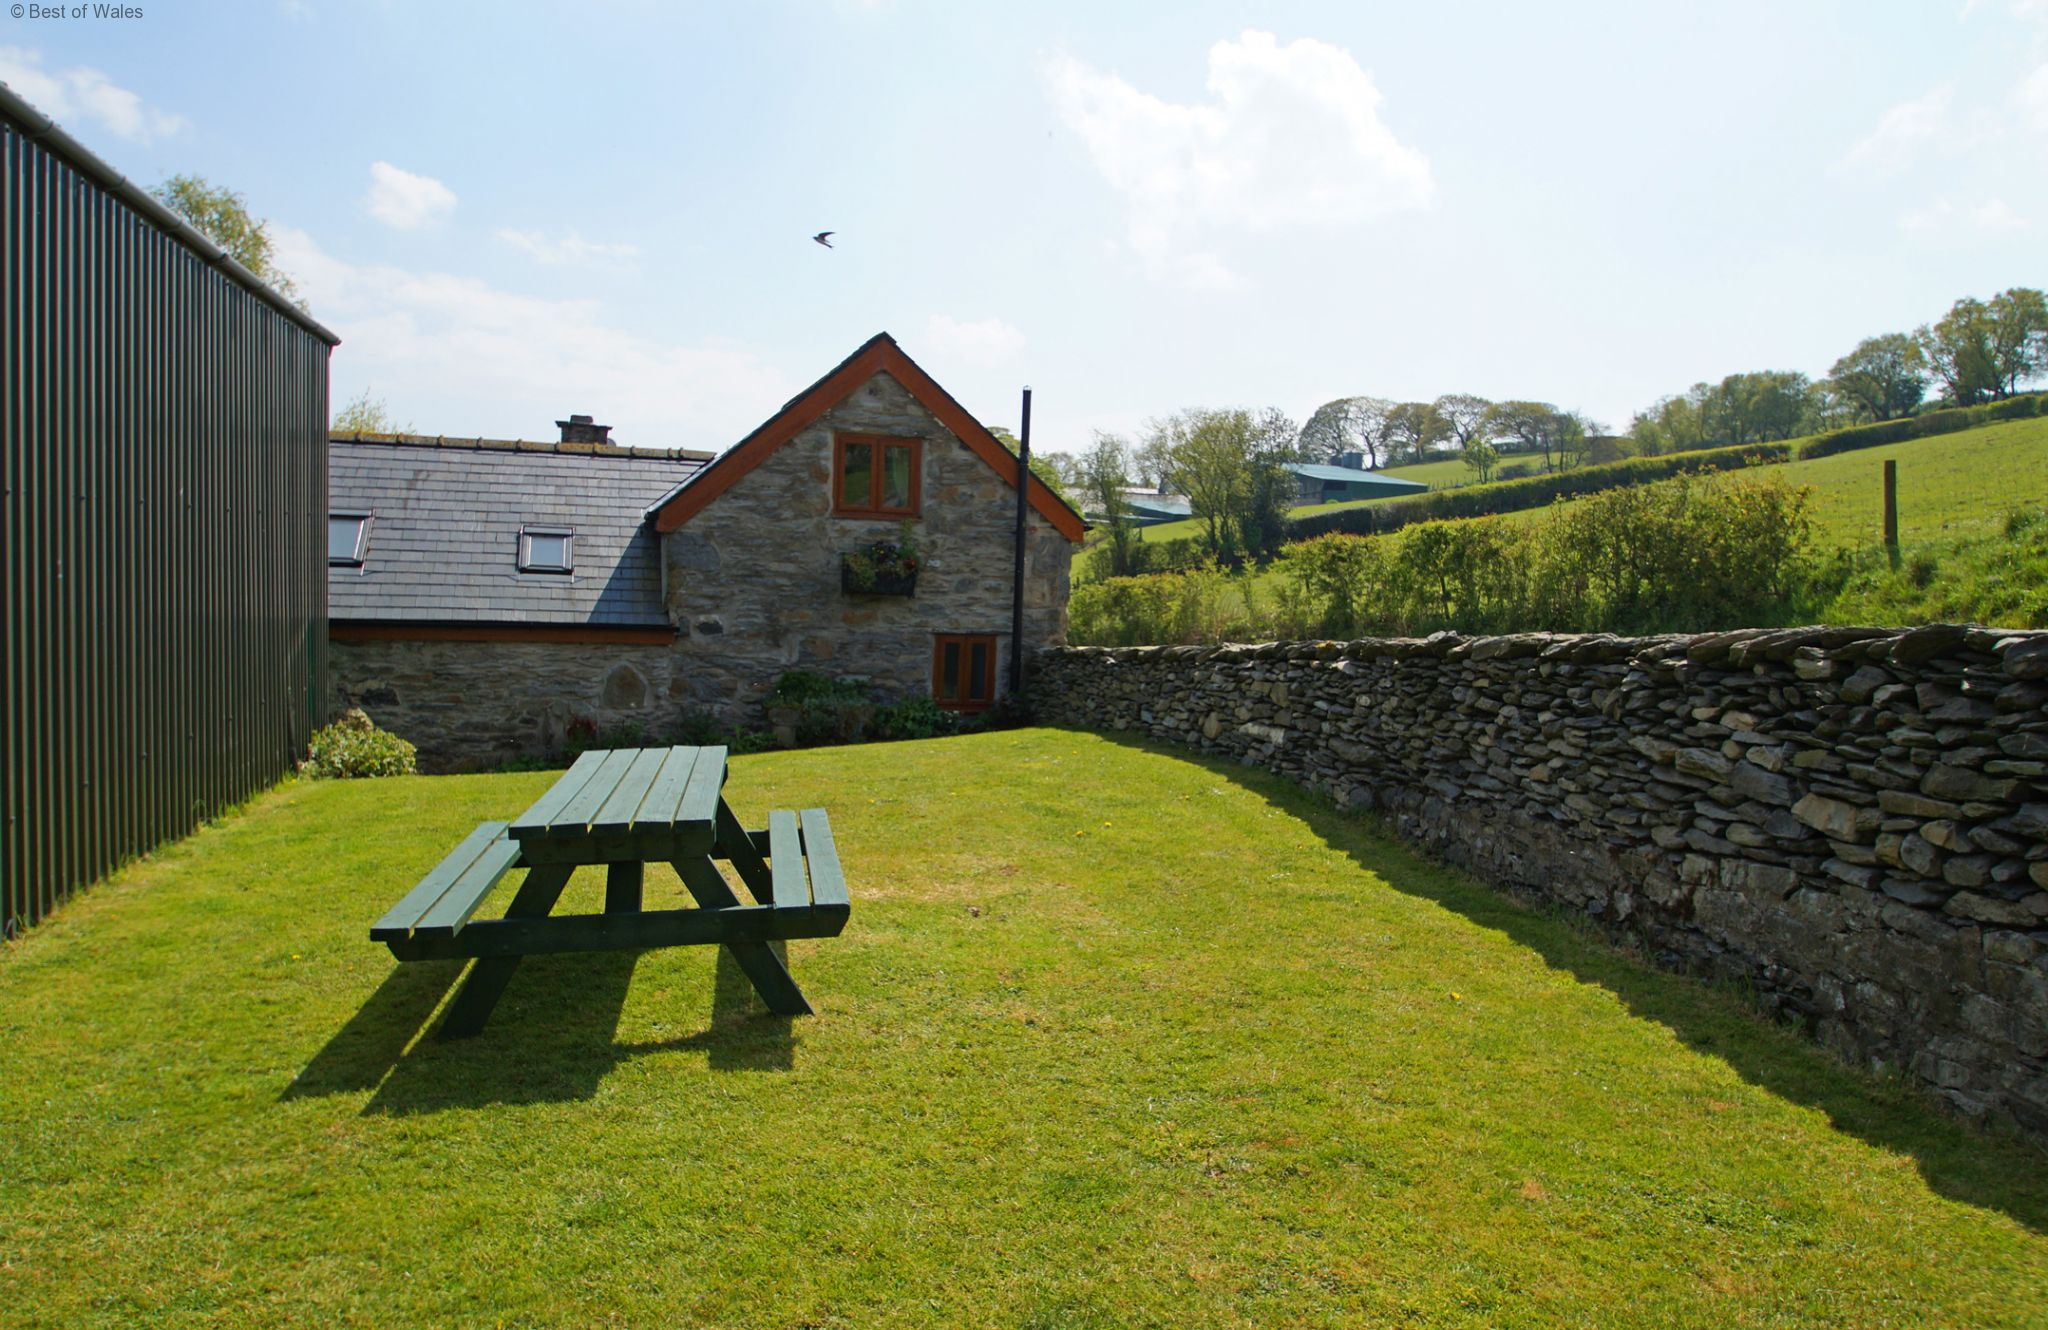 Cheap cottages in wales to rent wales friendly cottage in for Cheap cottages